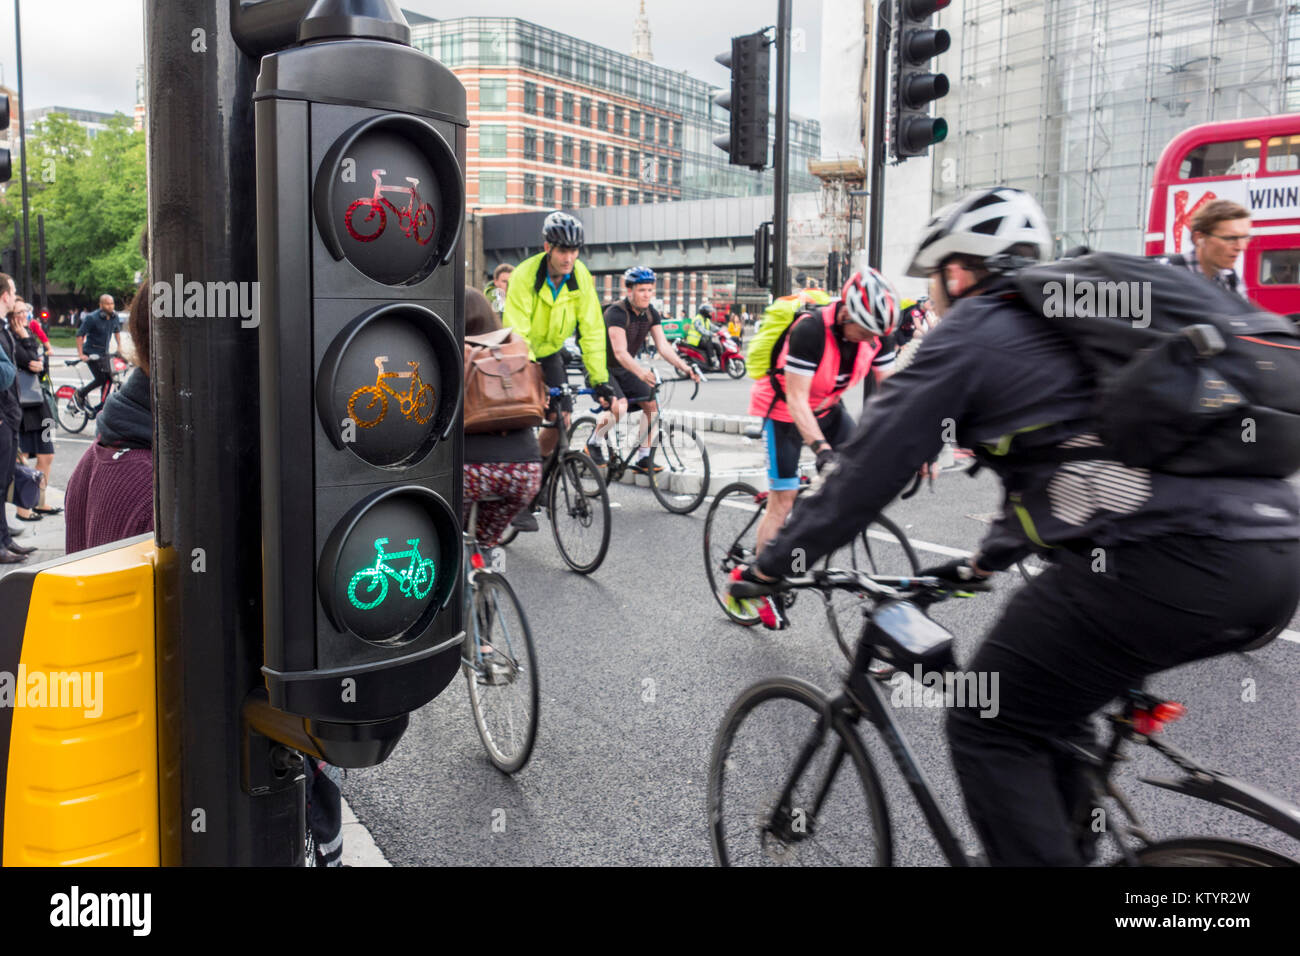 Cycle traffic lights and cyclists on North-South Cycle Superhighway / Cycle Superhighway 6, Blackfiars, City of - Stock Image